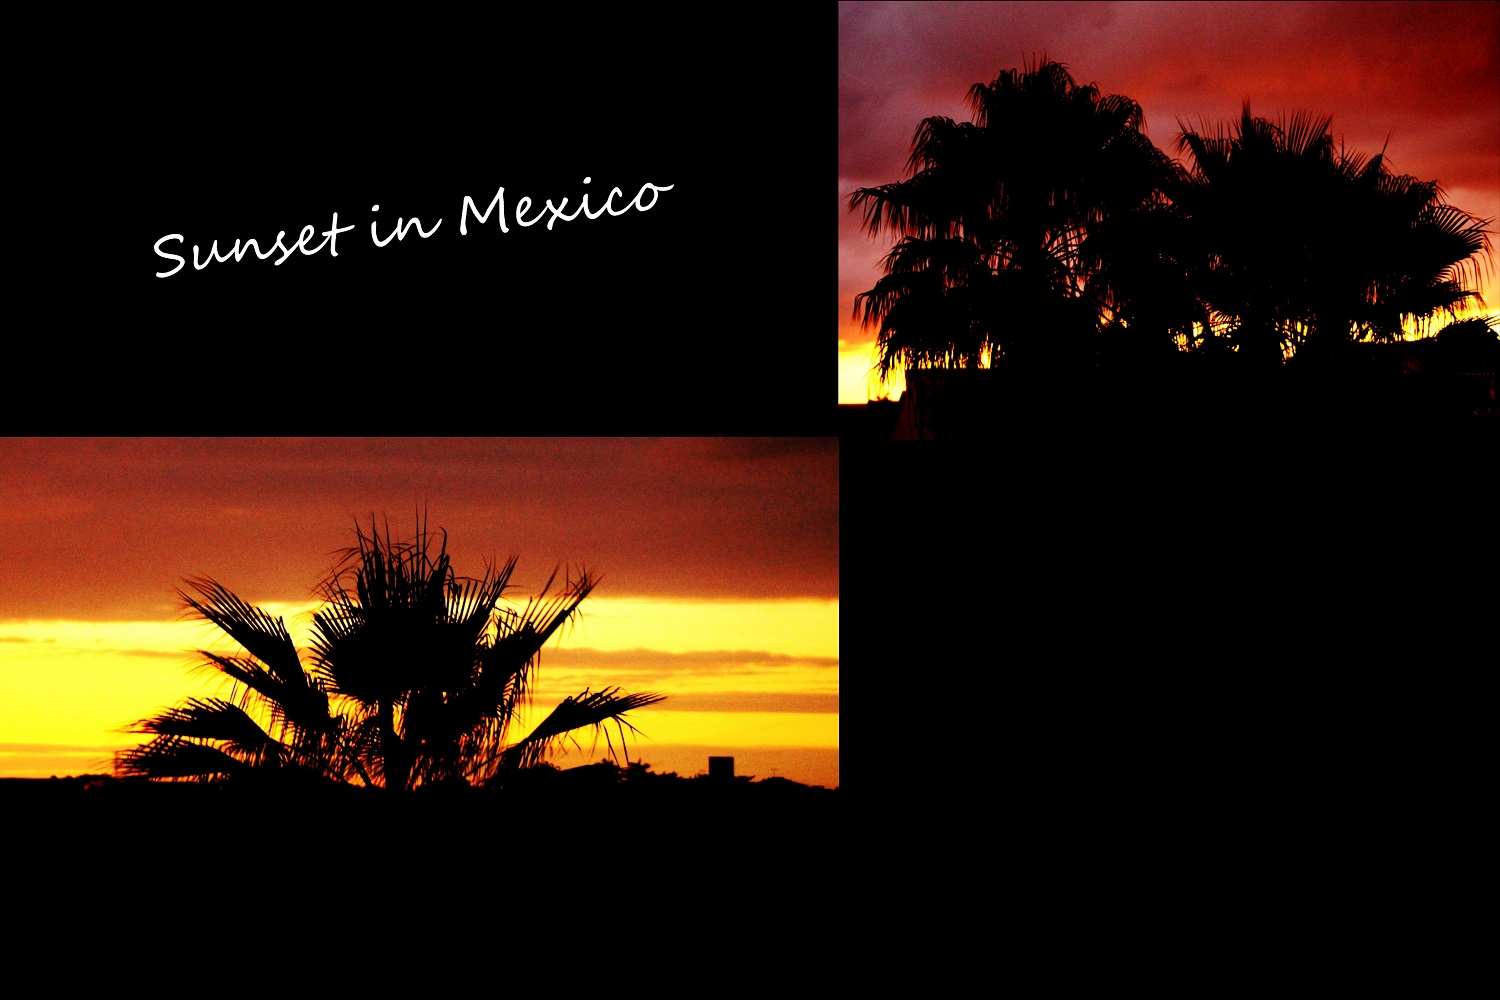 sunset in mexico palm trees